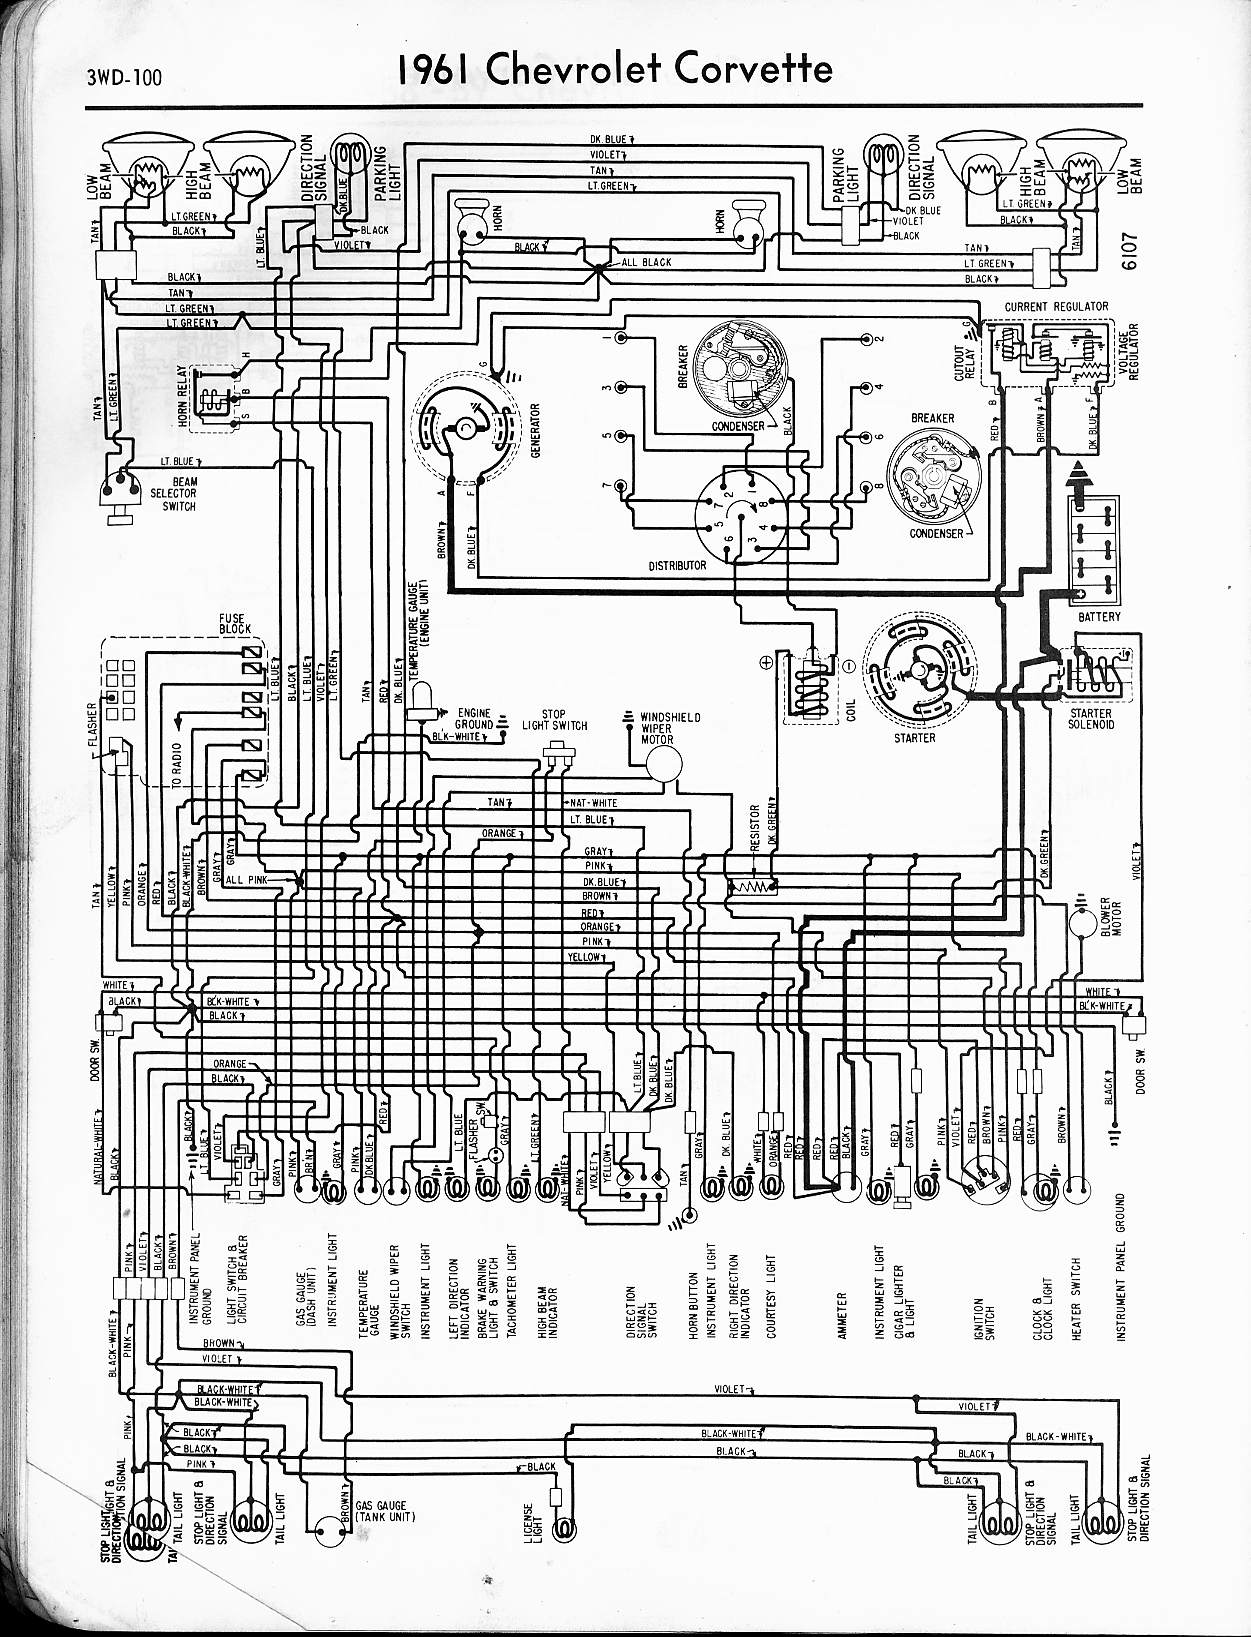 57 65 chevy wiring diagrams rh oldcarmanualproject com 80 corvette wiring diagrams 1981 corvette wiring diagrams